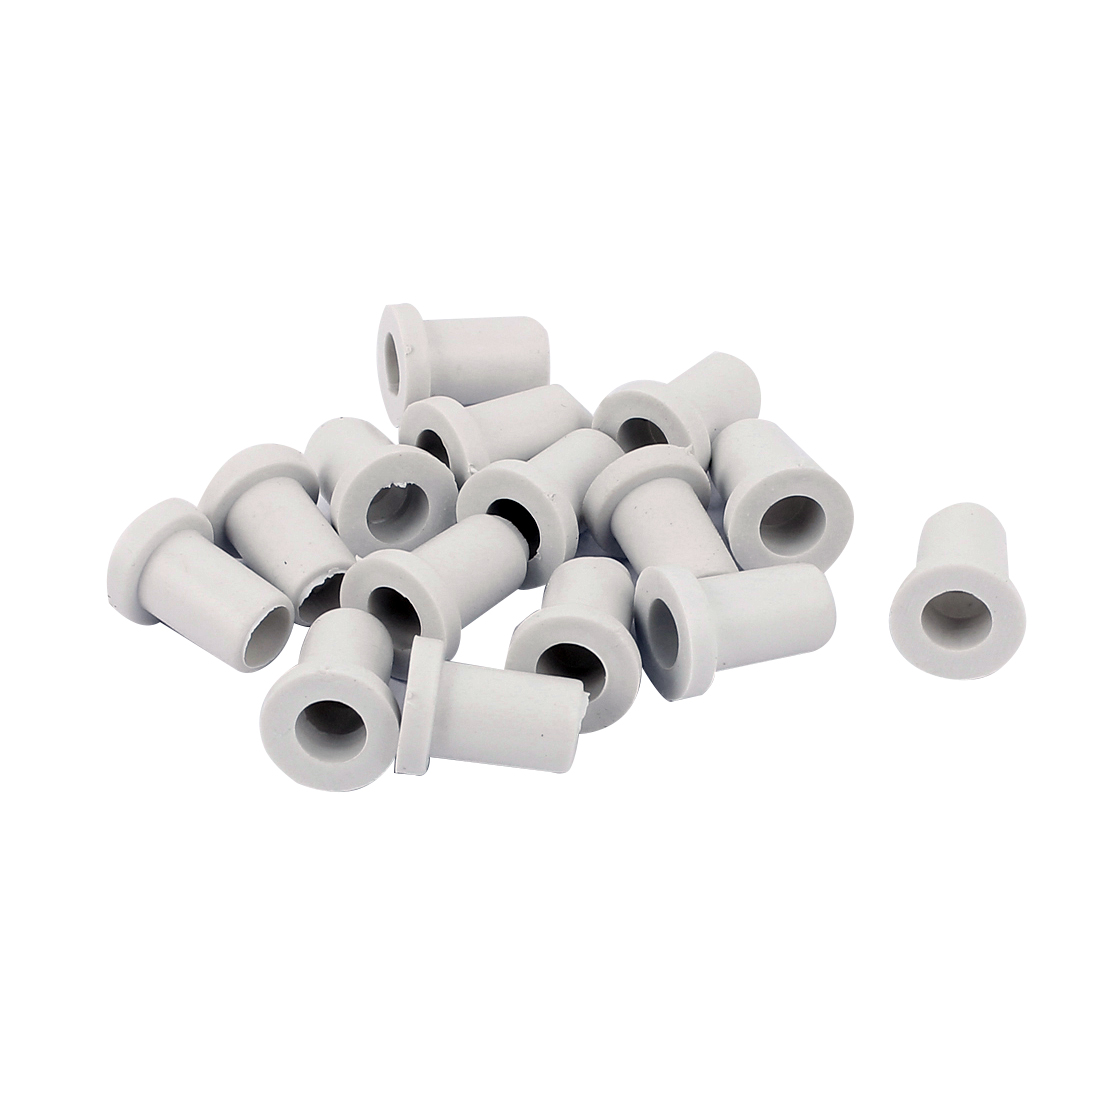 10 Pcs 15mm x 7.5mm x 6mm Strain Relief Cord Boot Protector Cable Hose White